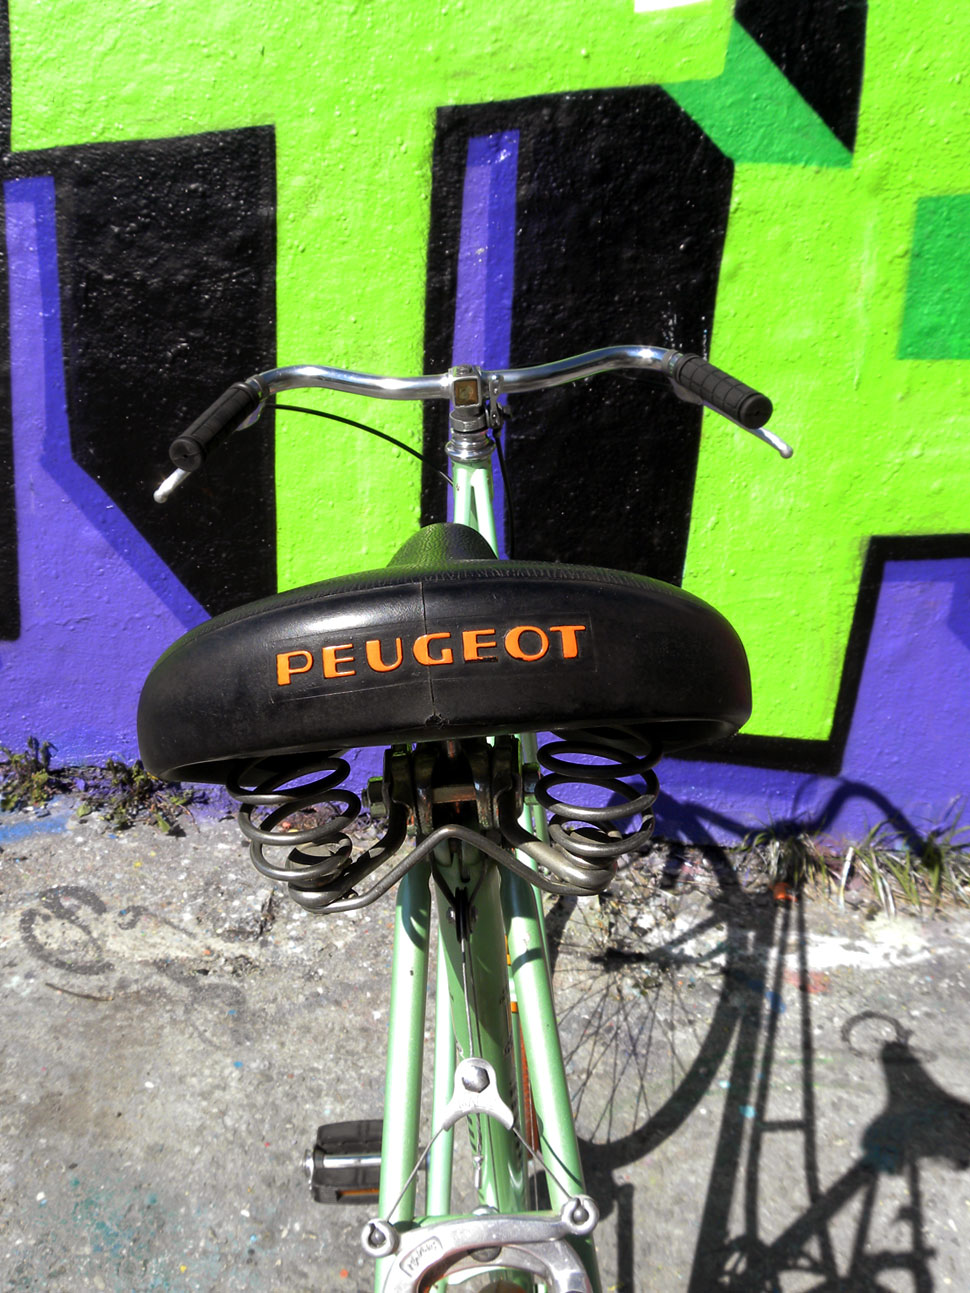 BildHoch_Peugeot_mint_orange_2